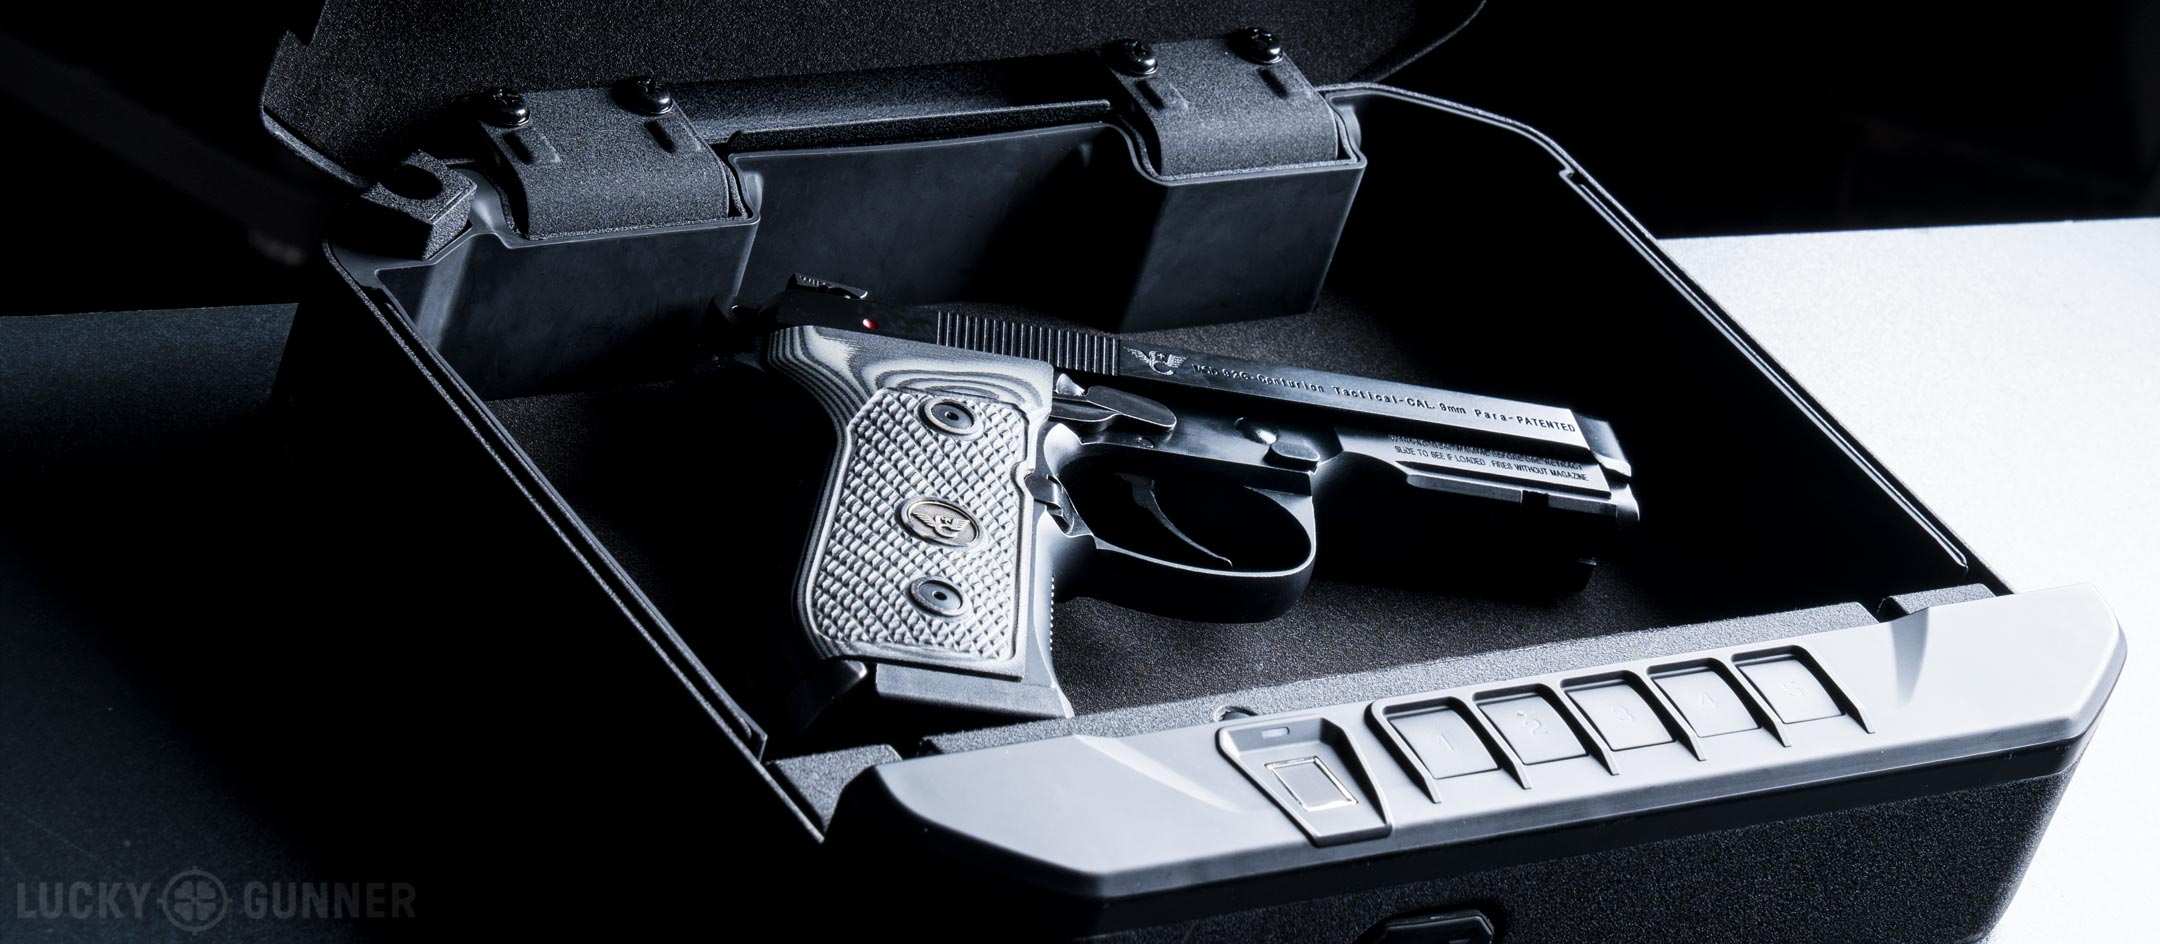 A Guide to Quick Access Pistol Safes - Lucky Gunner Lounge